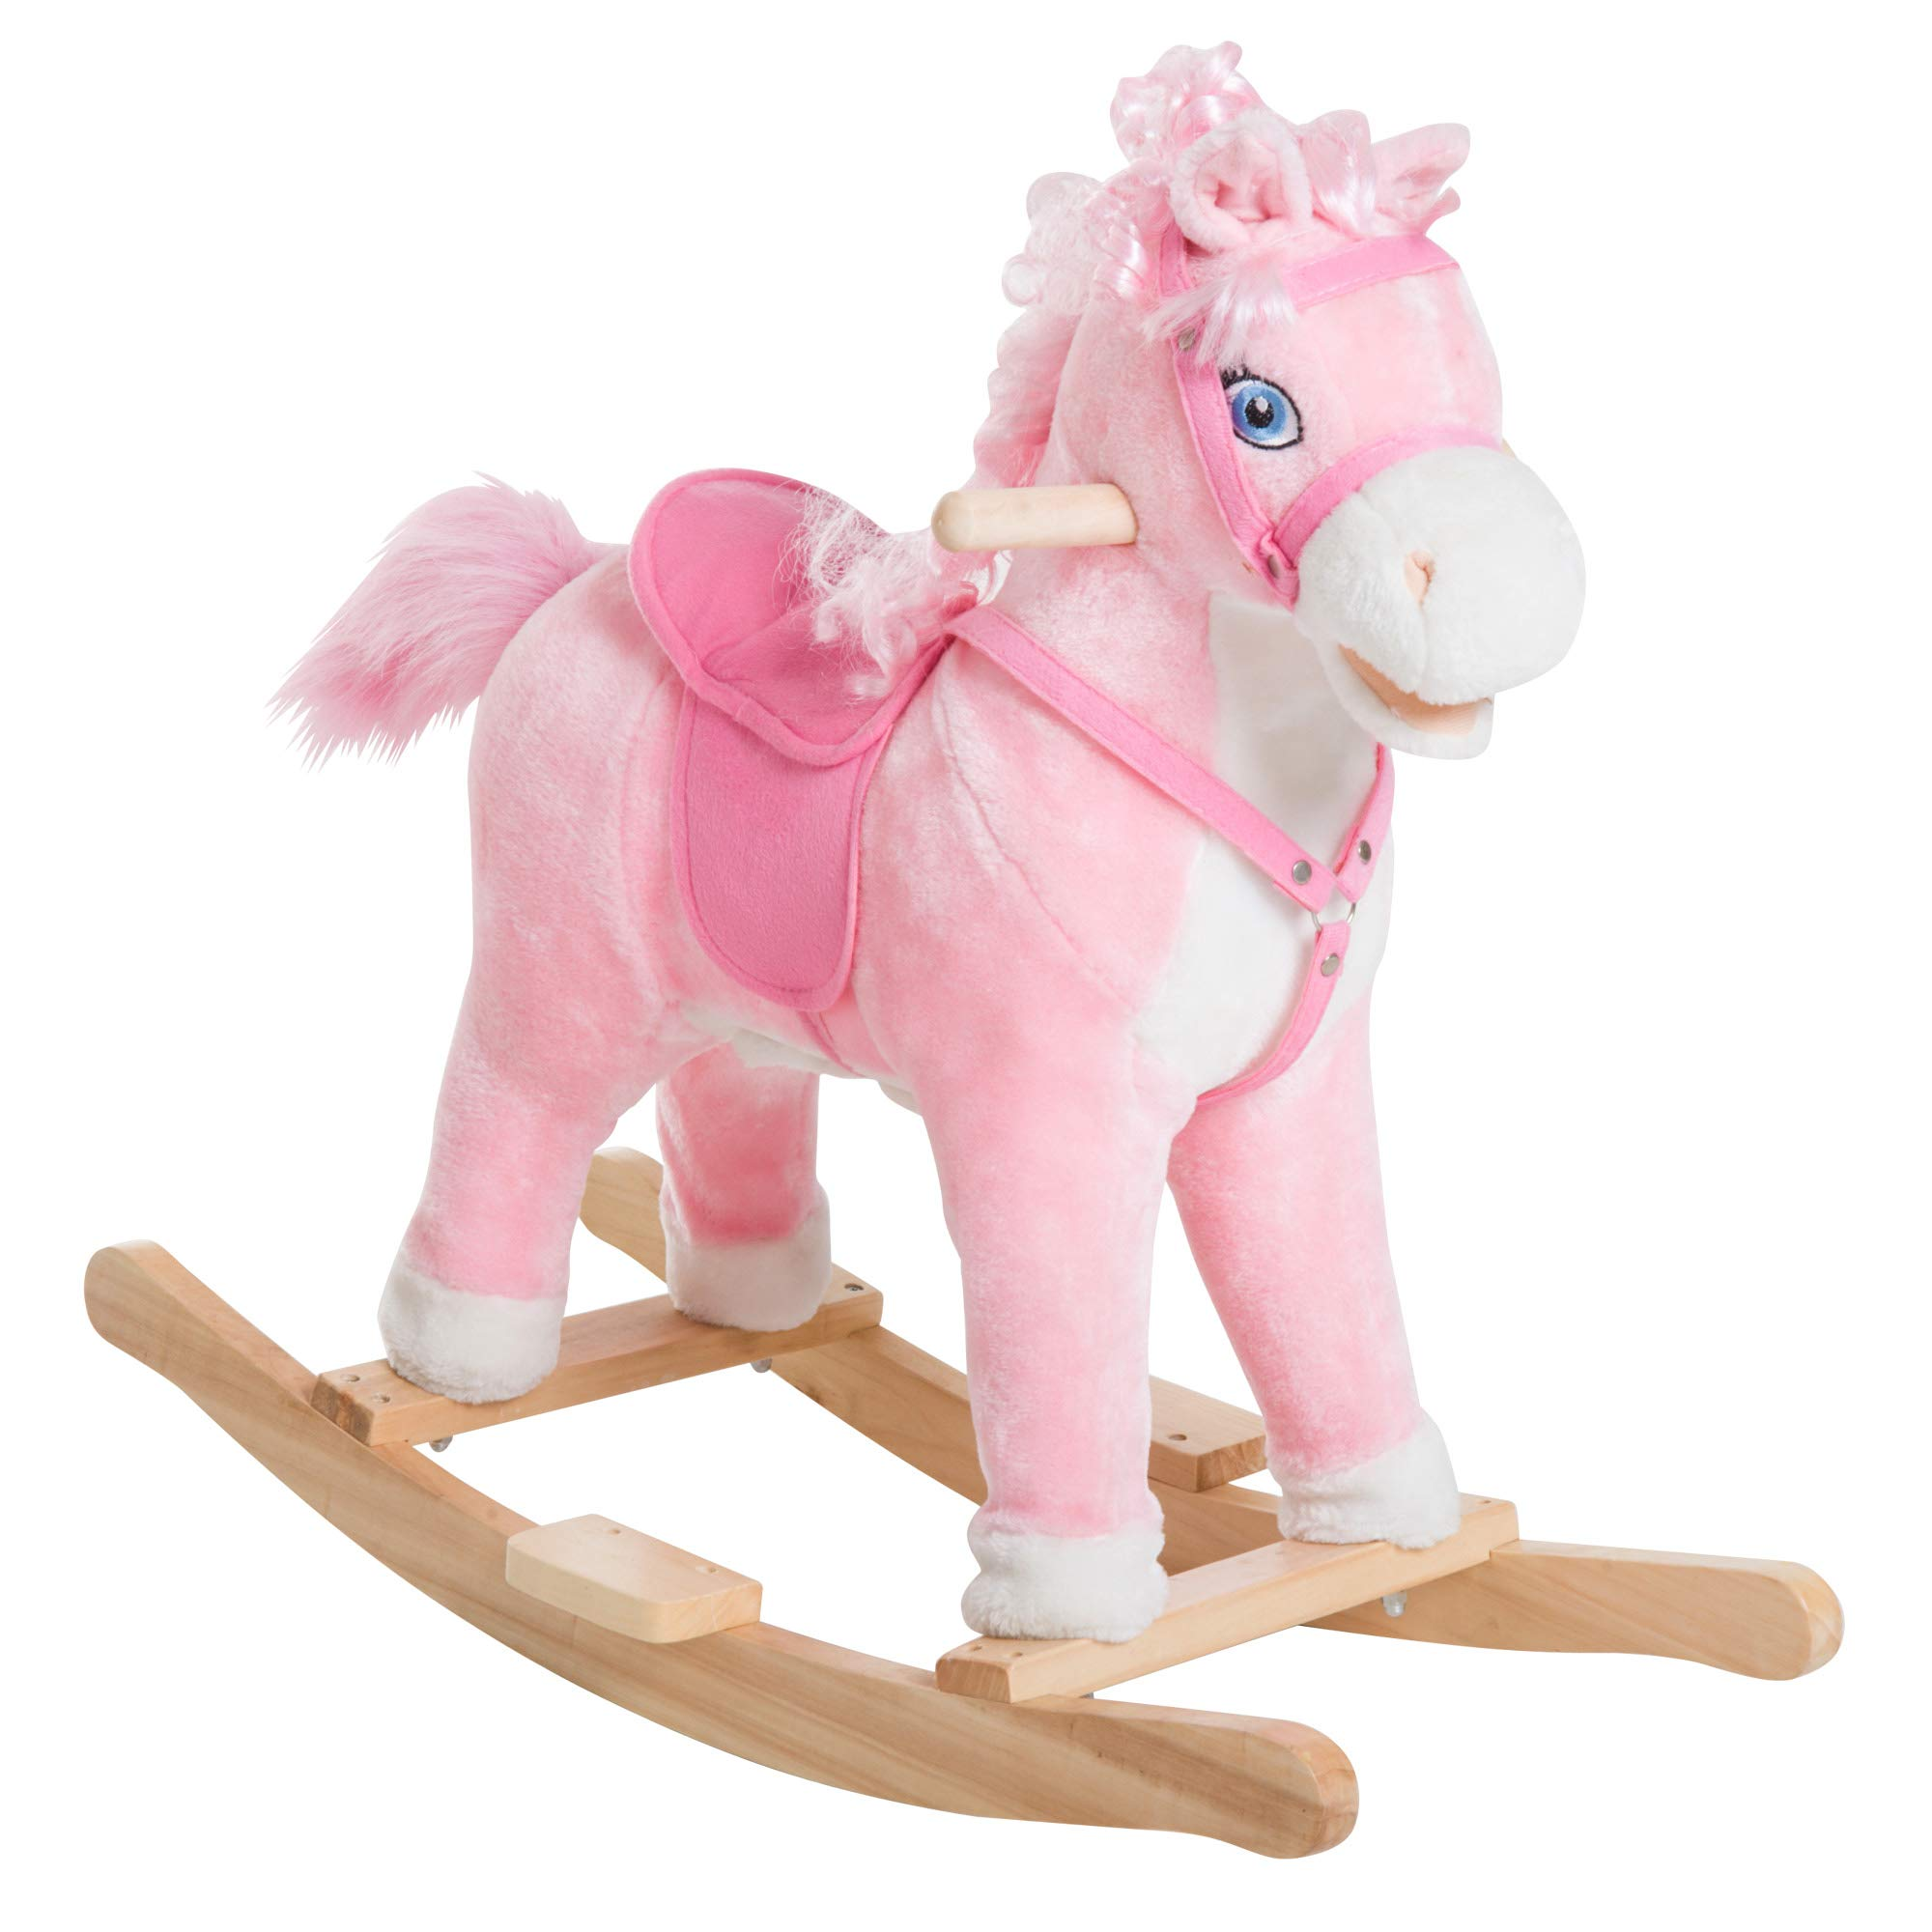 Qaba Kids Plush Toy Rocking Horse Ride on with Realistic Sounds Moving Mouth & Tail -Pink